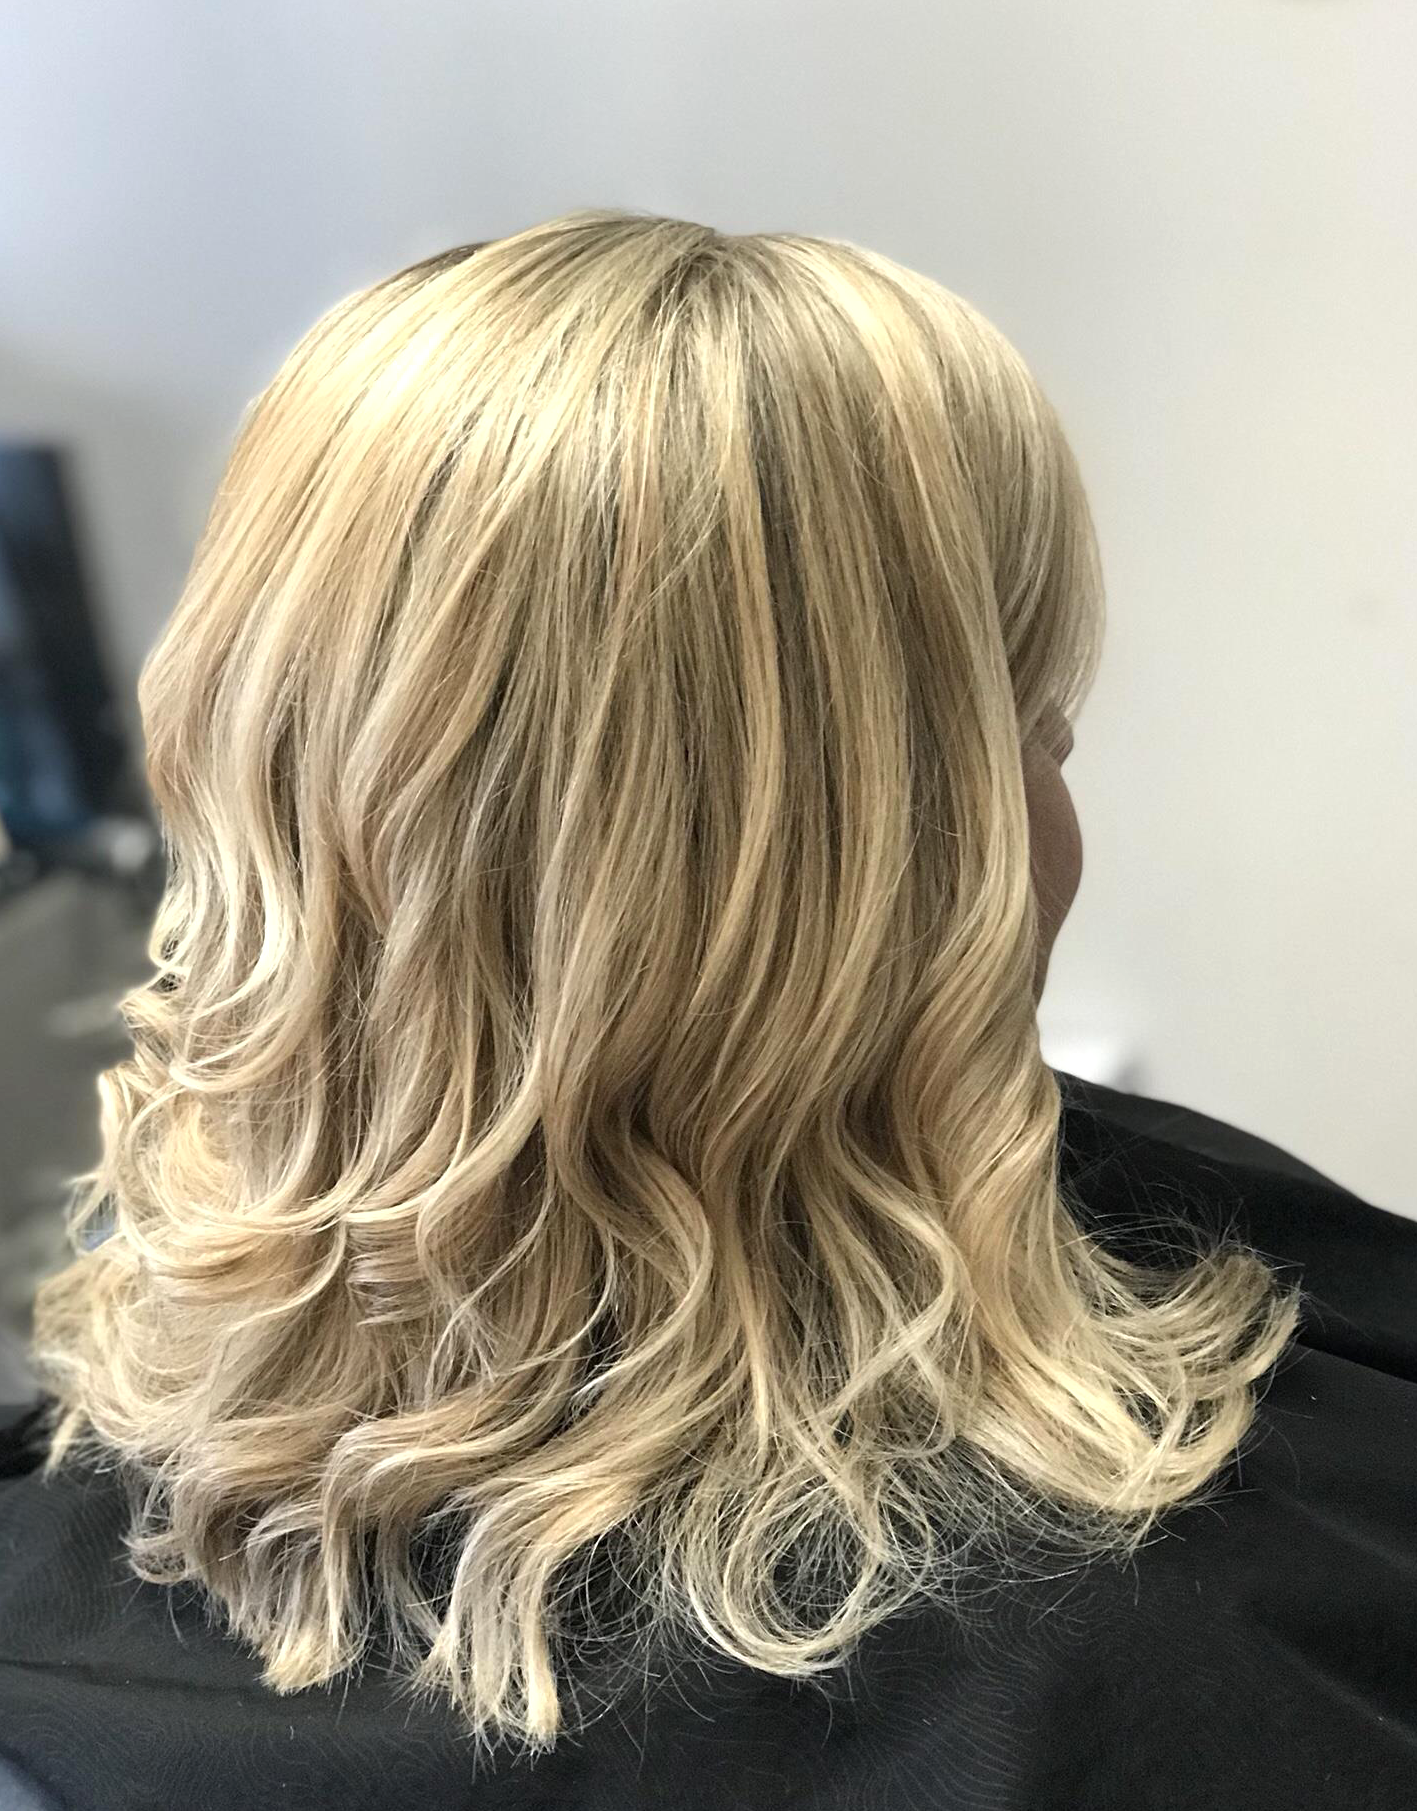 Highlight and Haircut $110 Hairstyles for Women Ideas